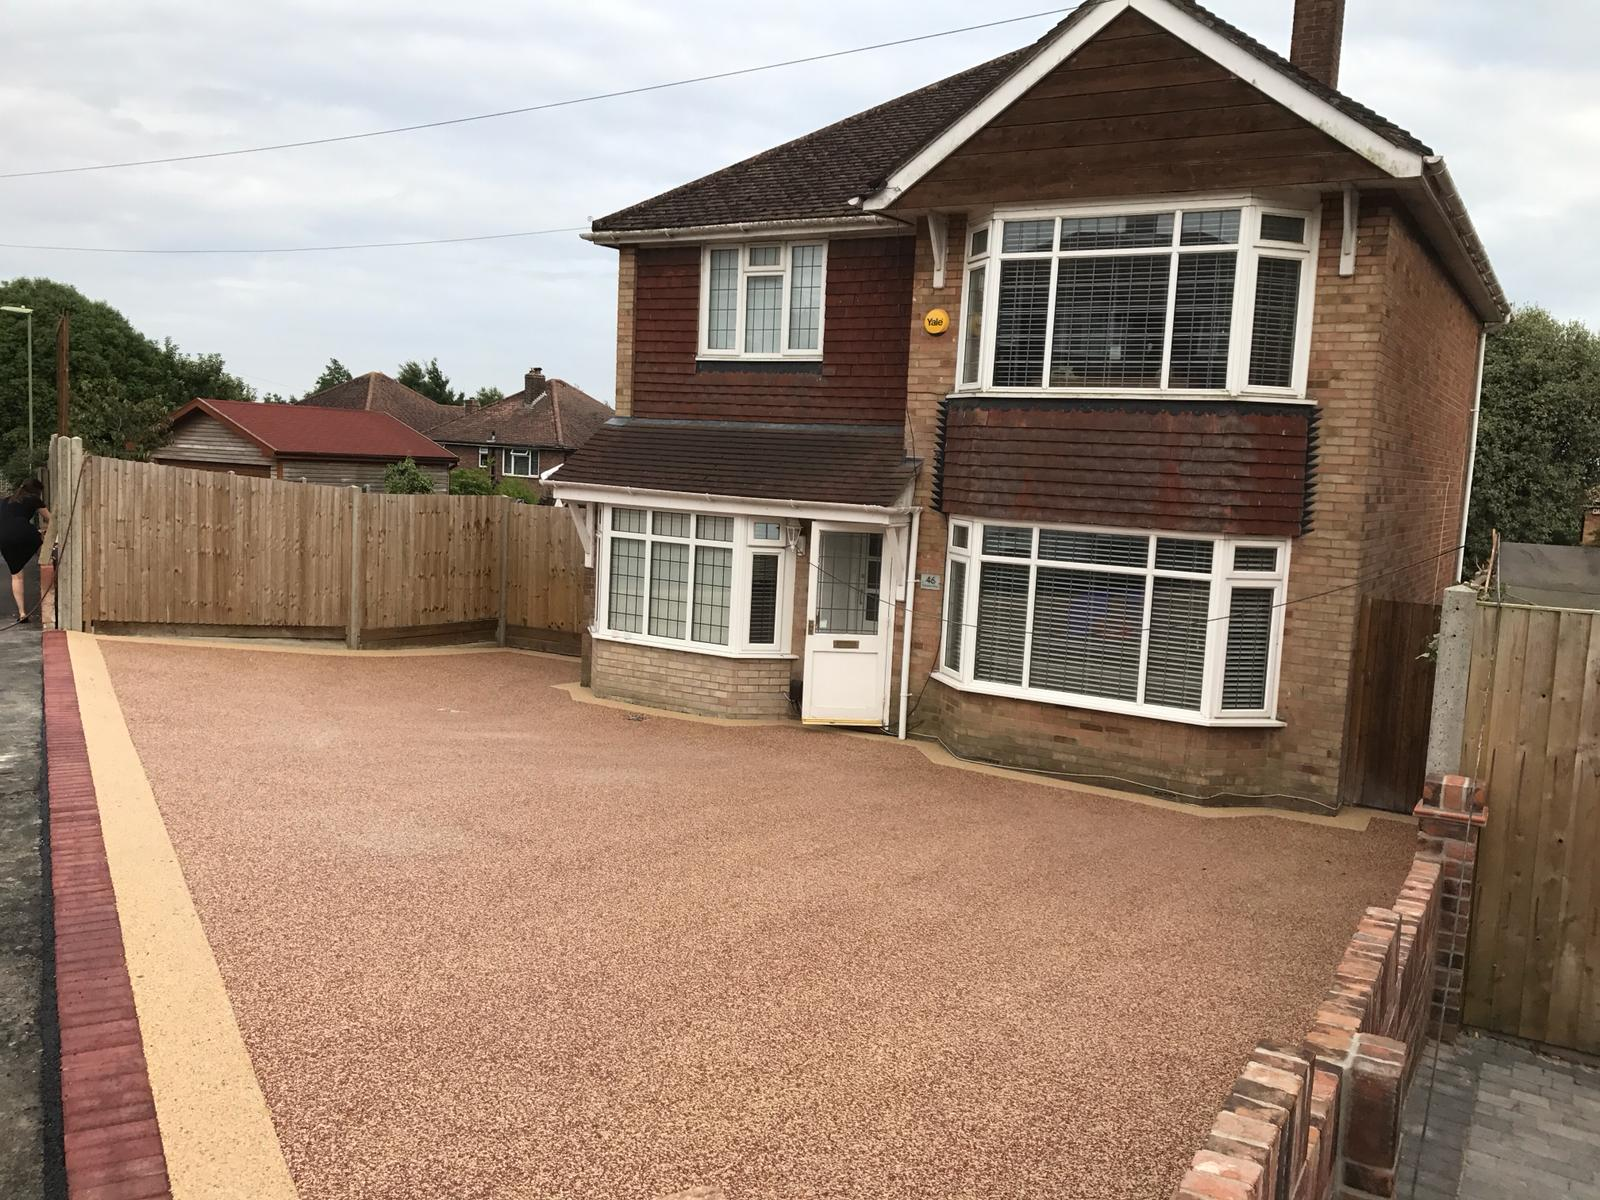 RESIN BOUND DRIVEWAY - TRANSCENDENCE WITH MEADOW BORDER